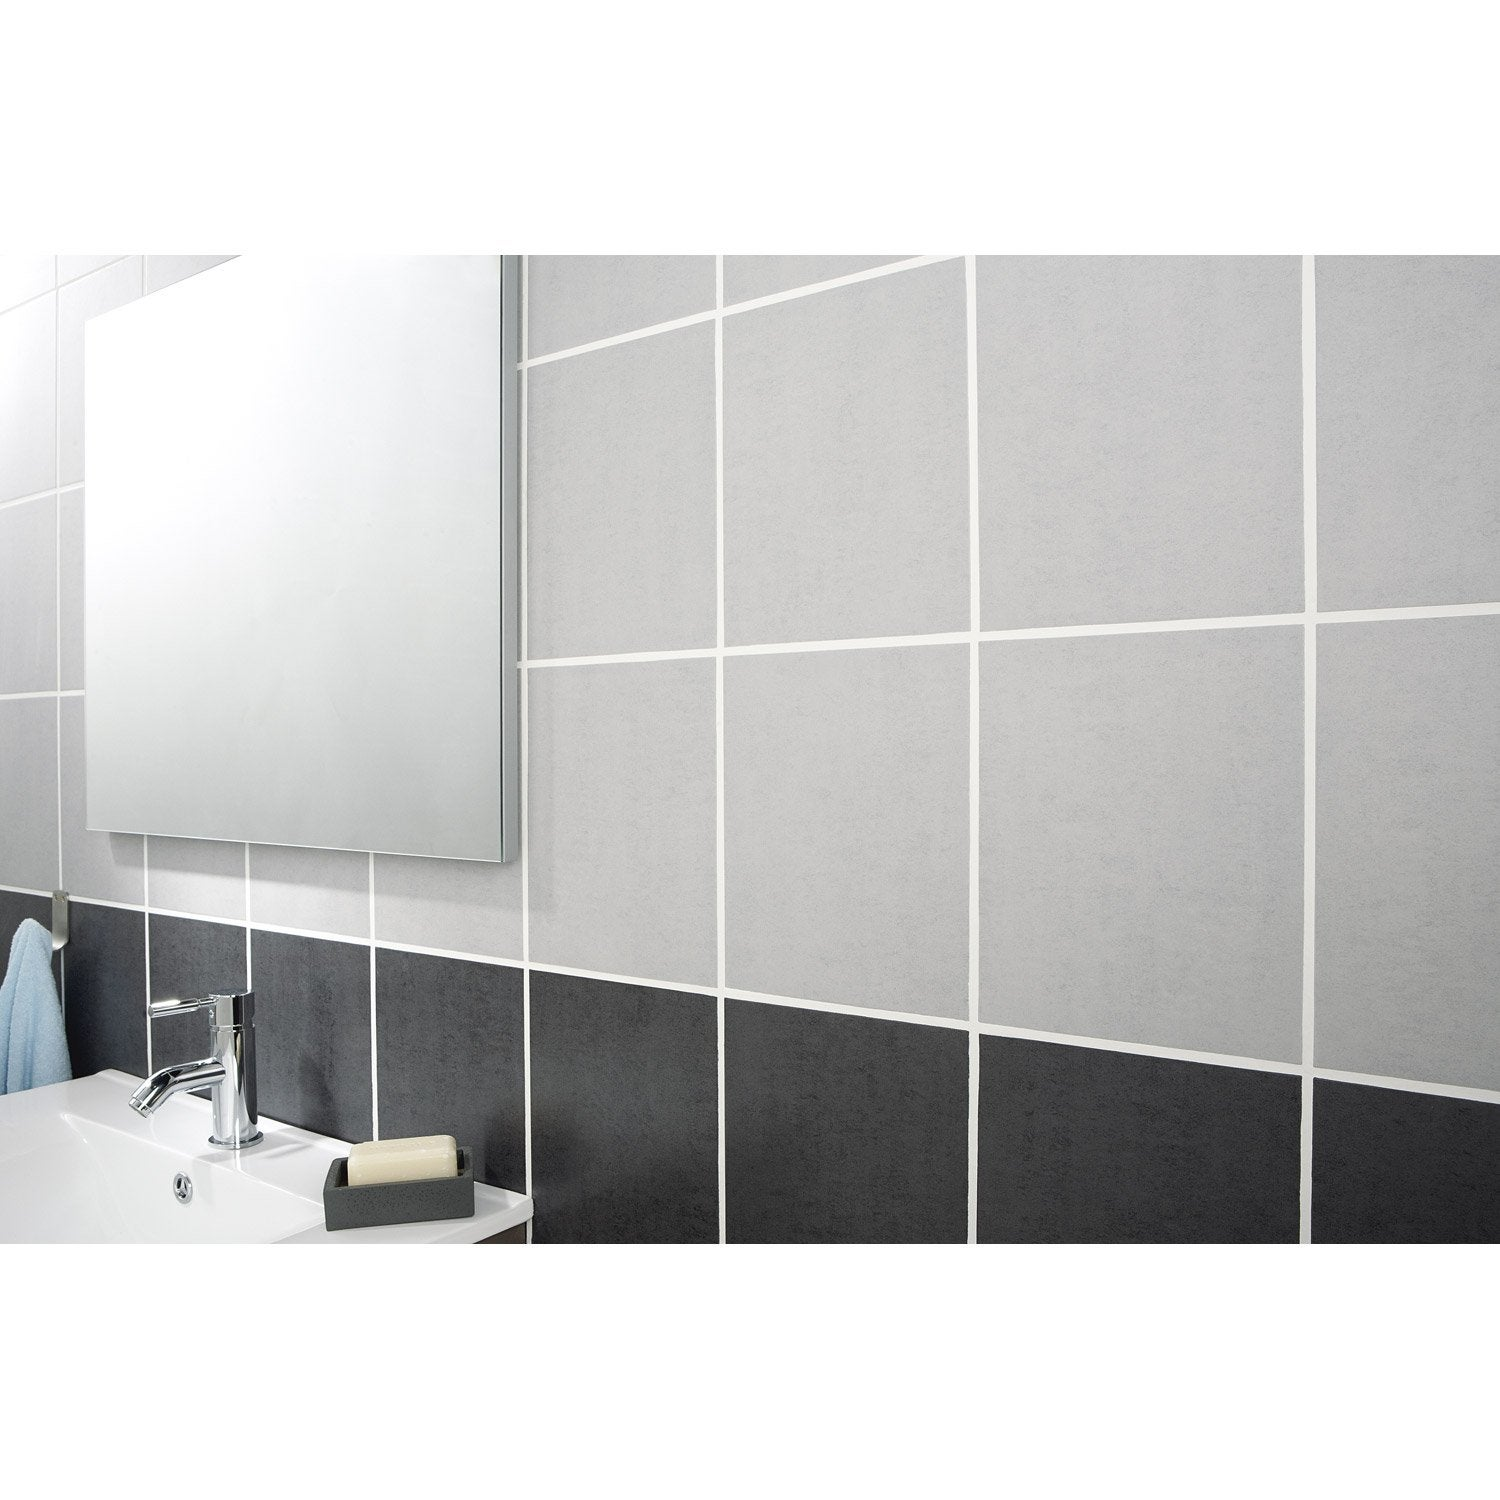 Fa ence mur gris clair fly a ro x cm leroy merlin for Carrelage 90x90 gris clair